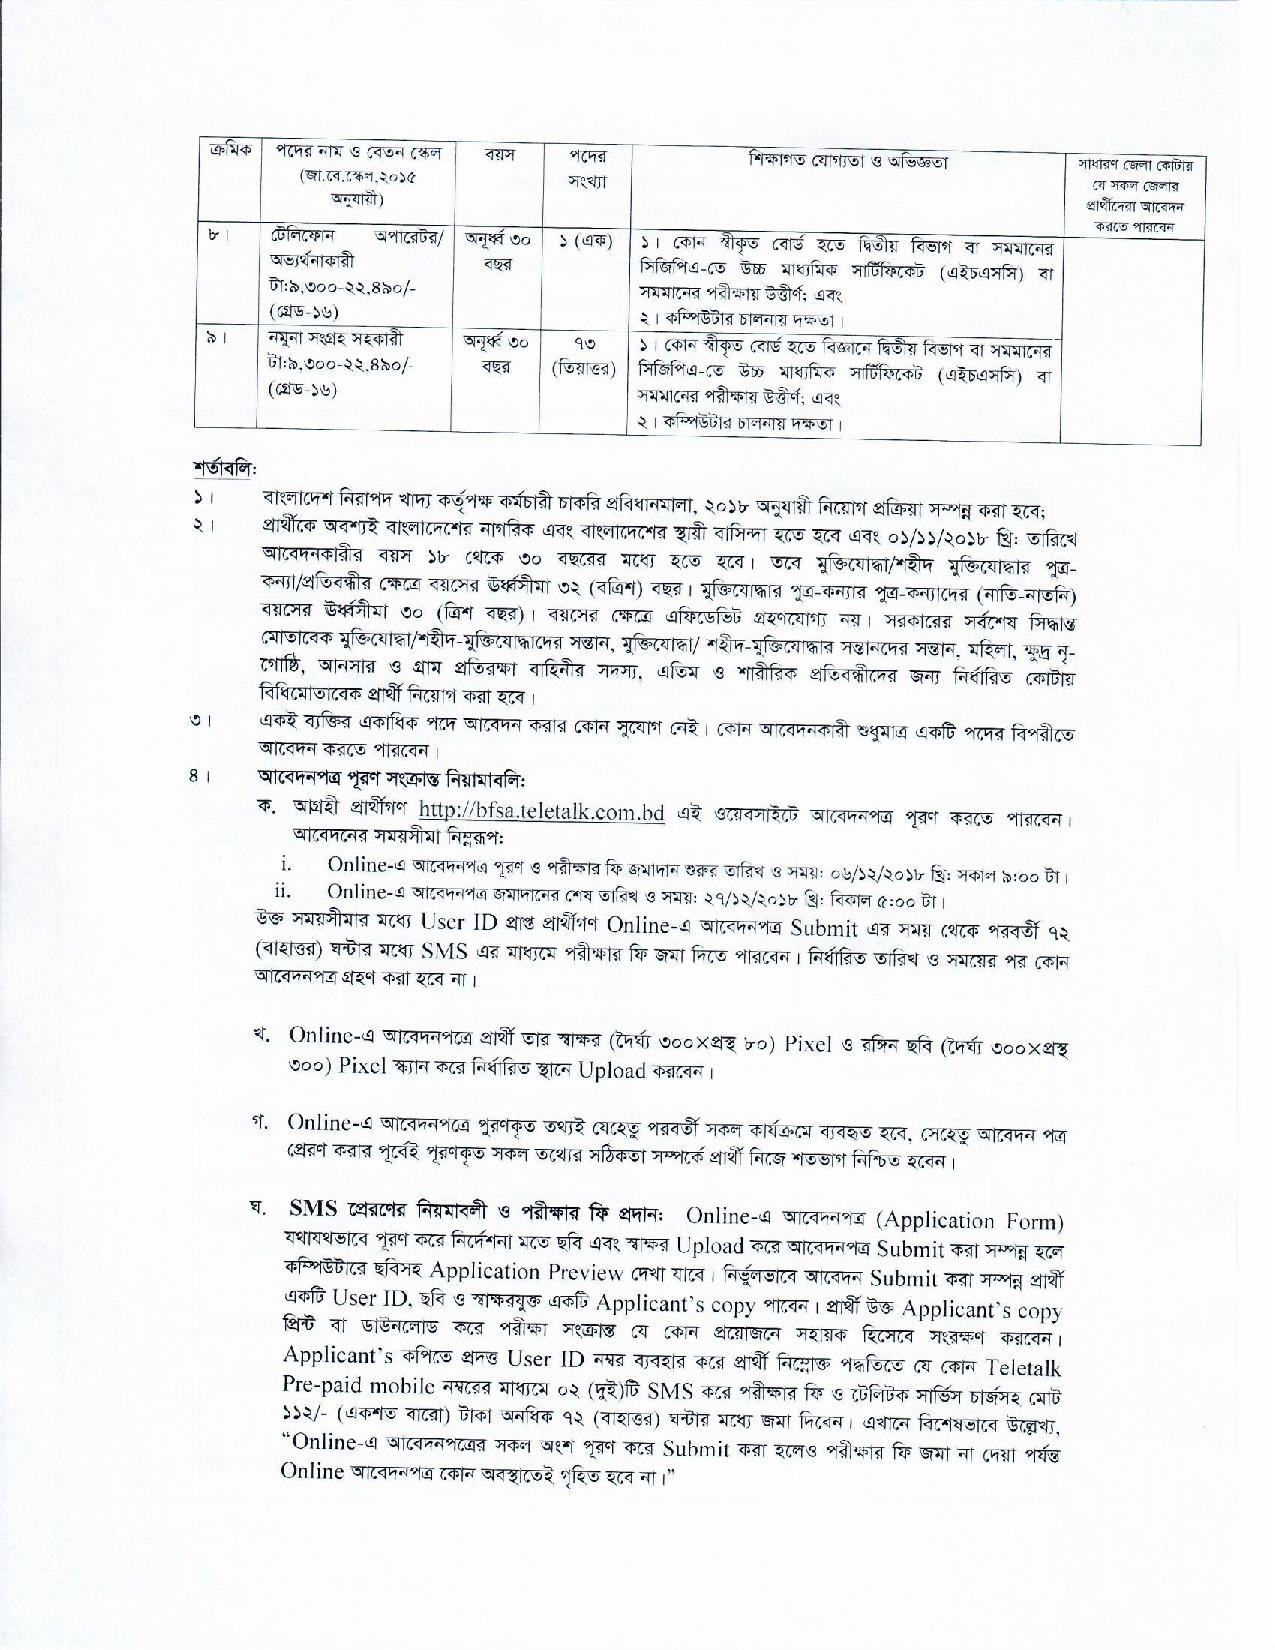 Bangladesh Food Safety Authority Job Circular & Apply Instruction -2019 1